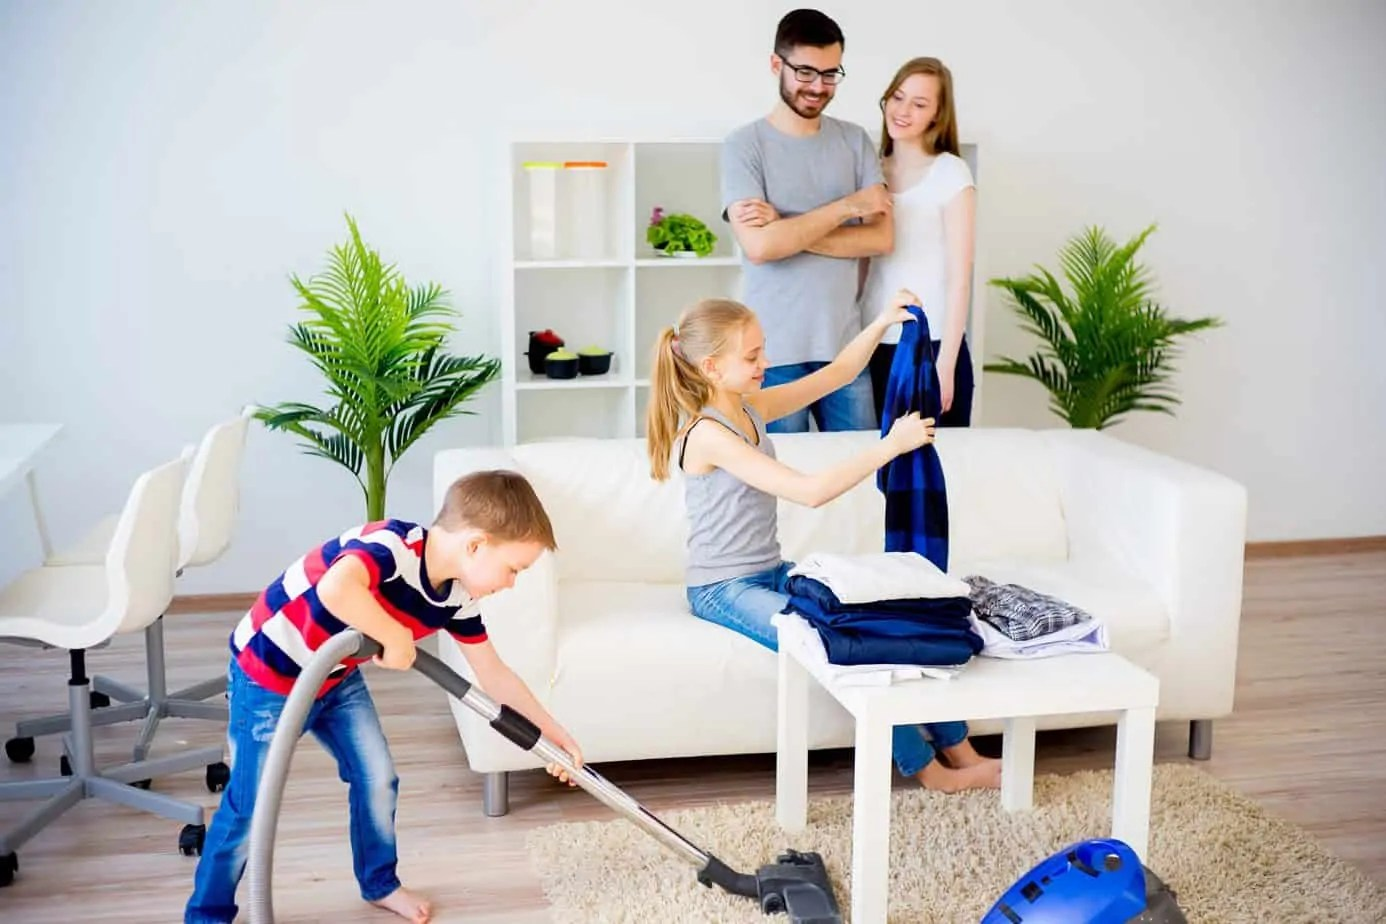 4-ways-i-could-have-a-spotless-home-but-i-dont-want-to